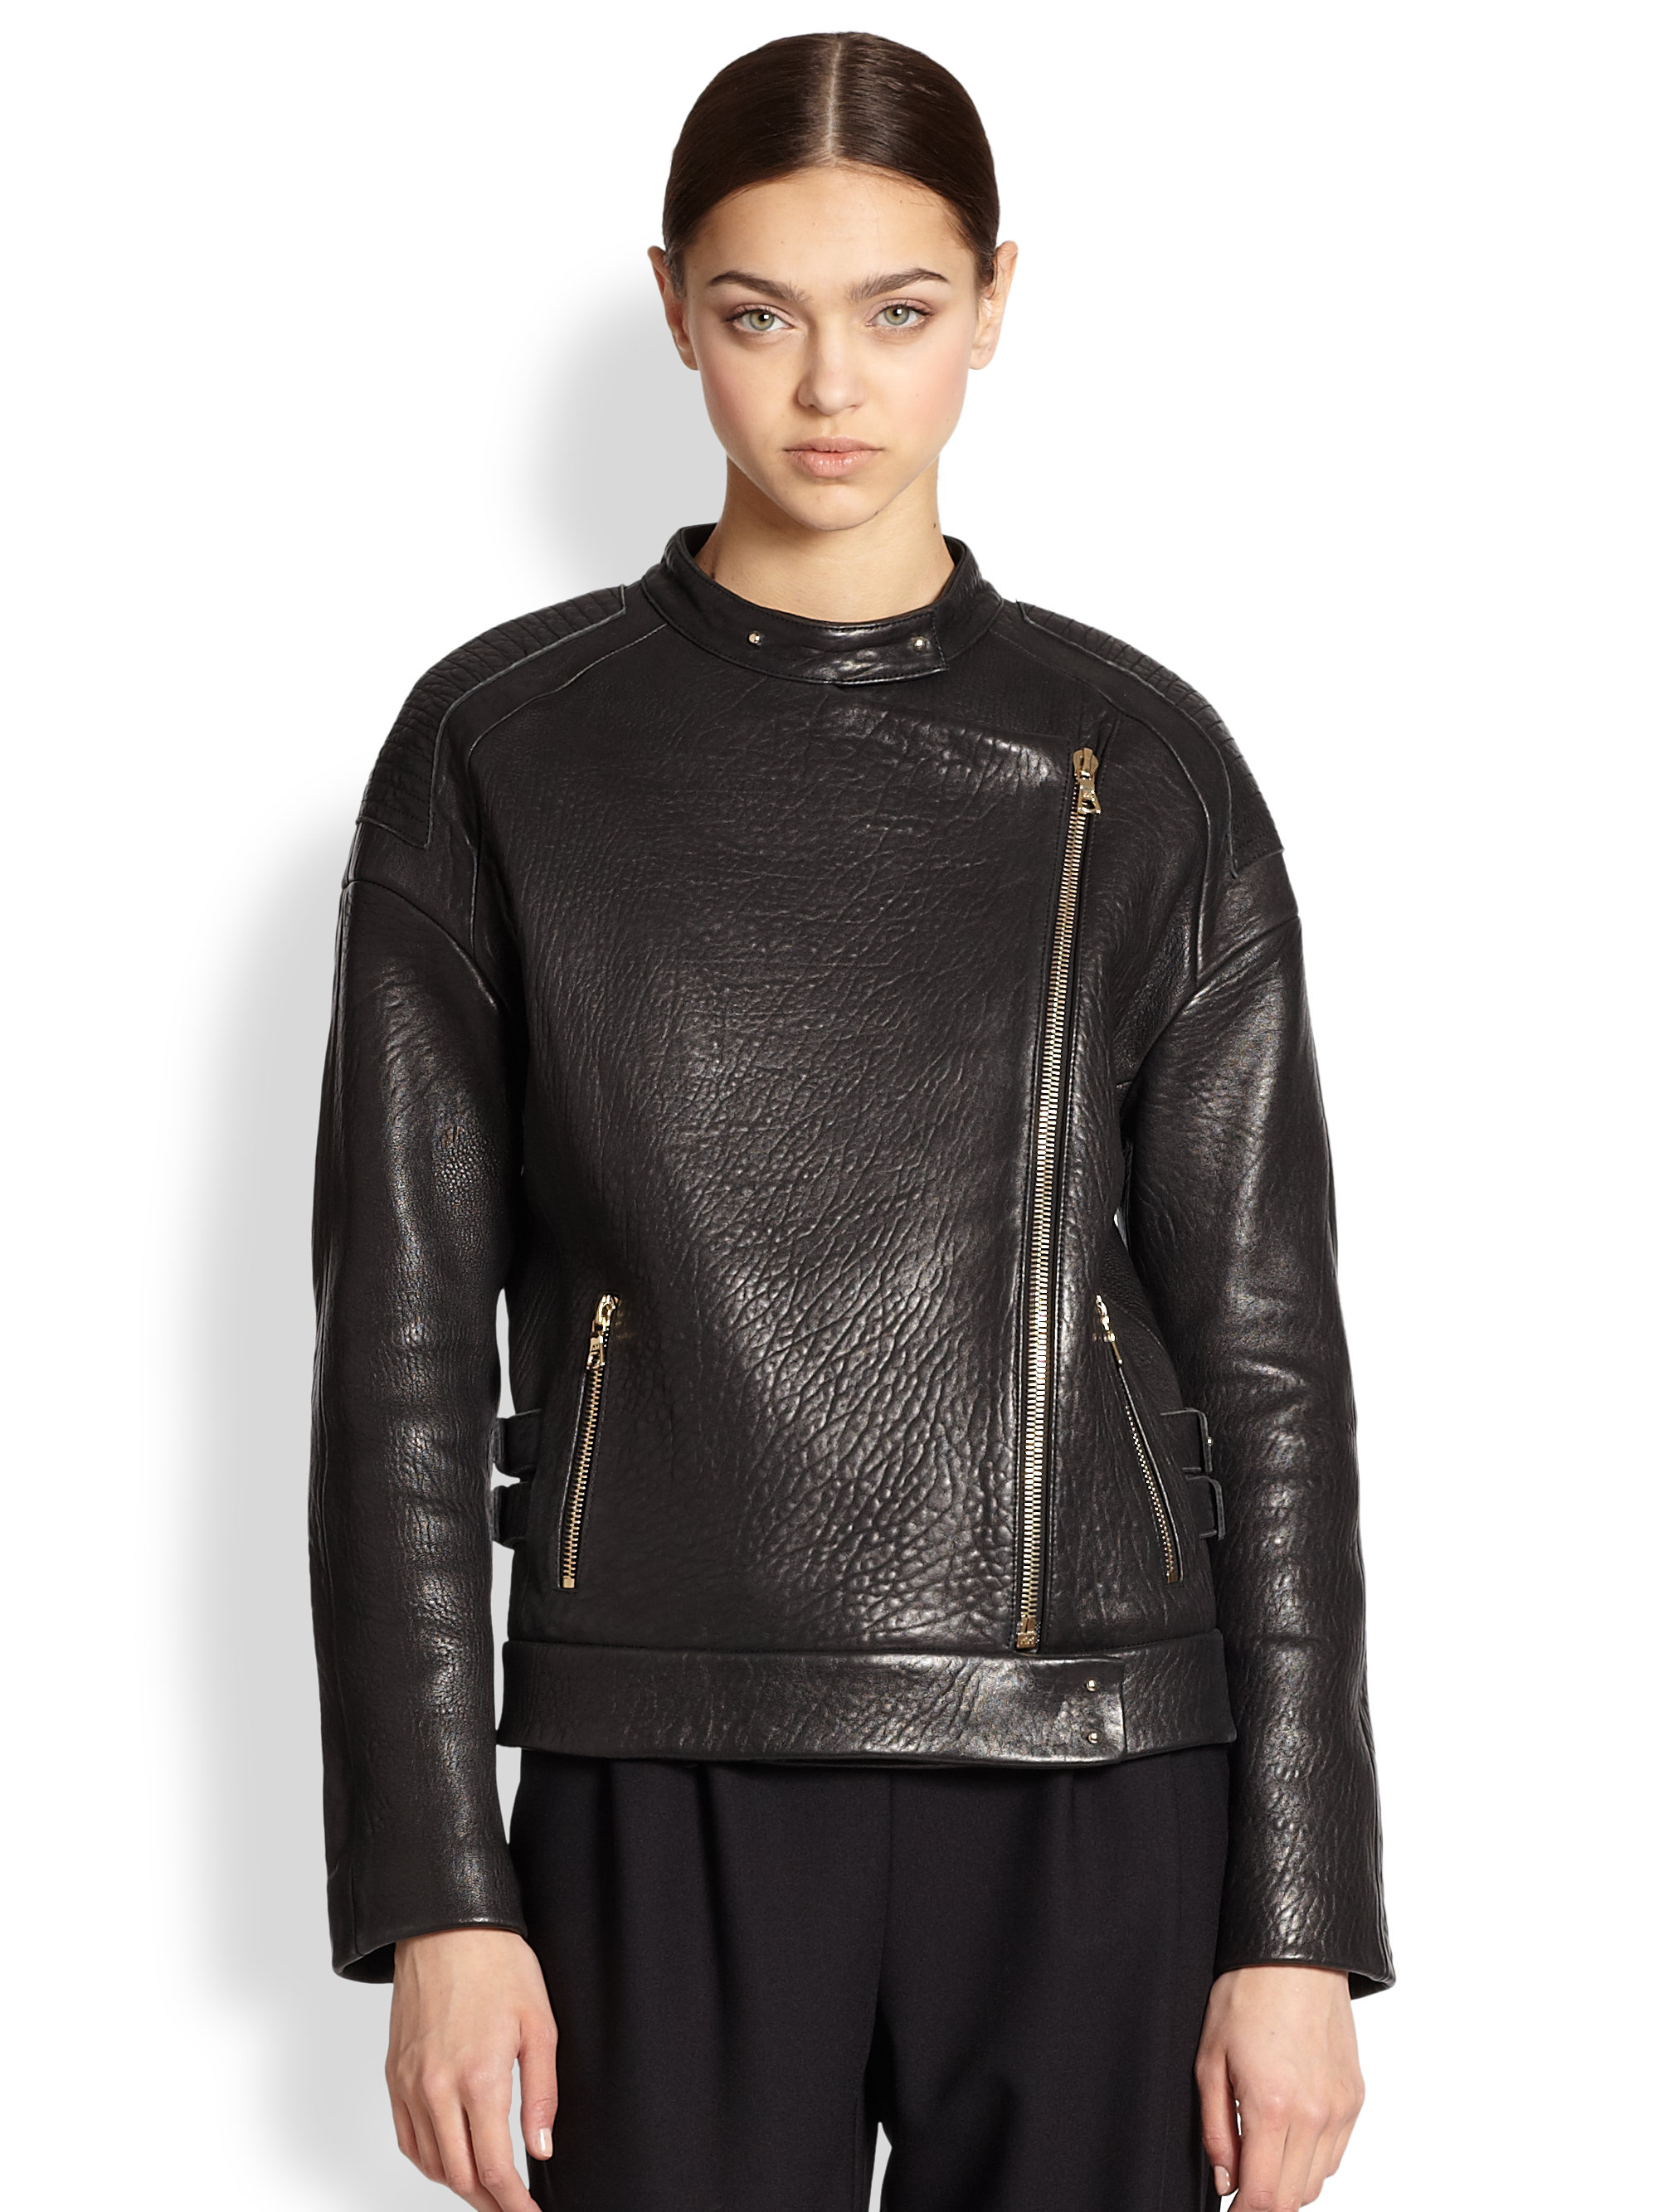 petite-pebbled-leather-jackets-pale-skin-teen